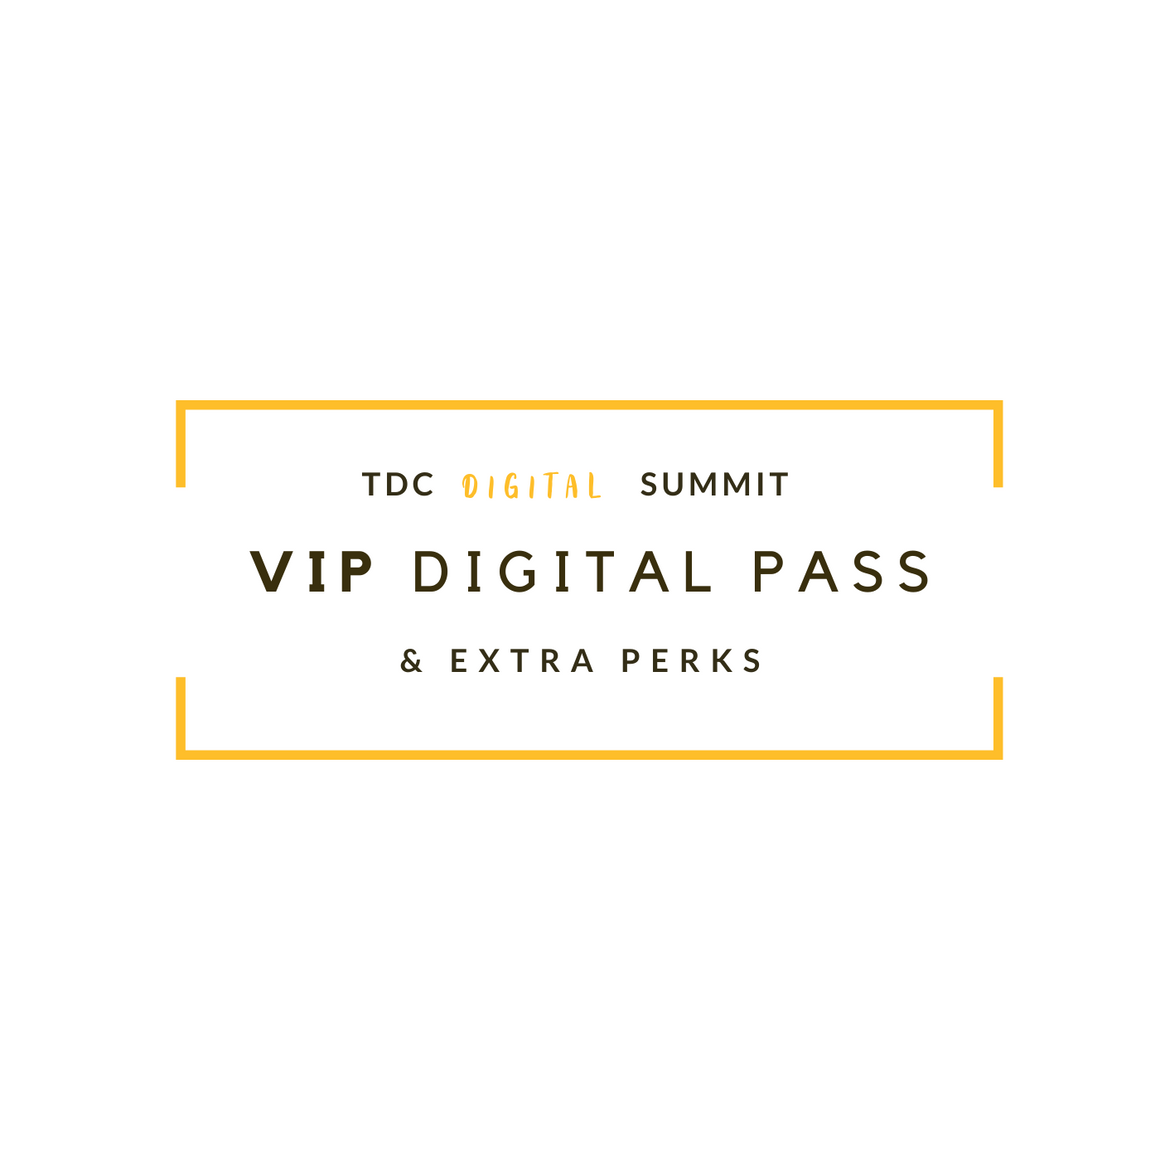 VIP Digital Pass